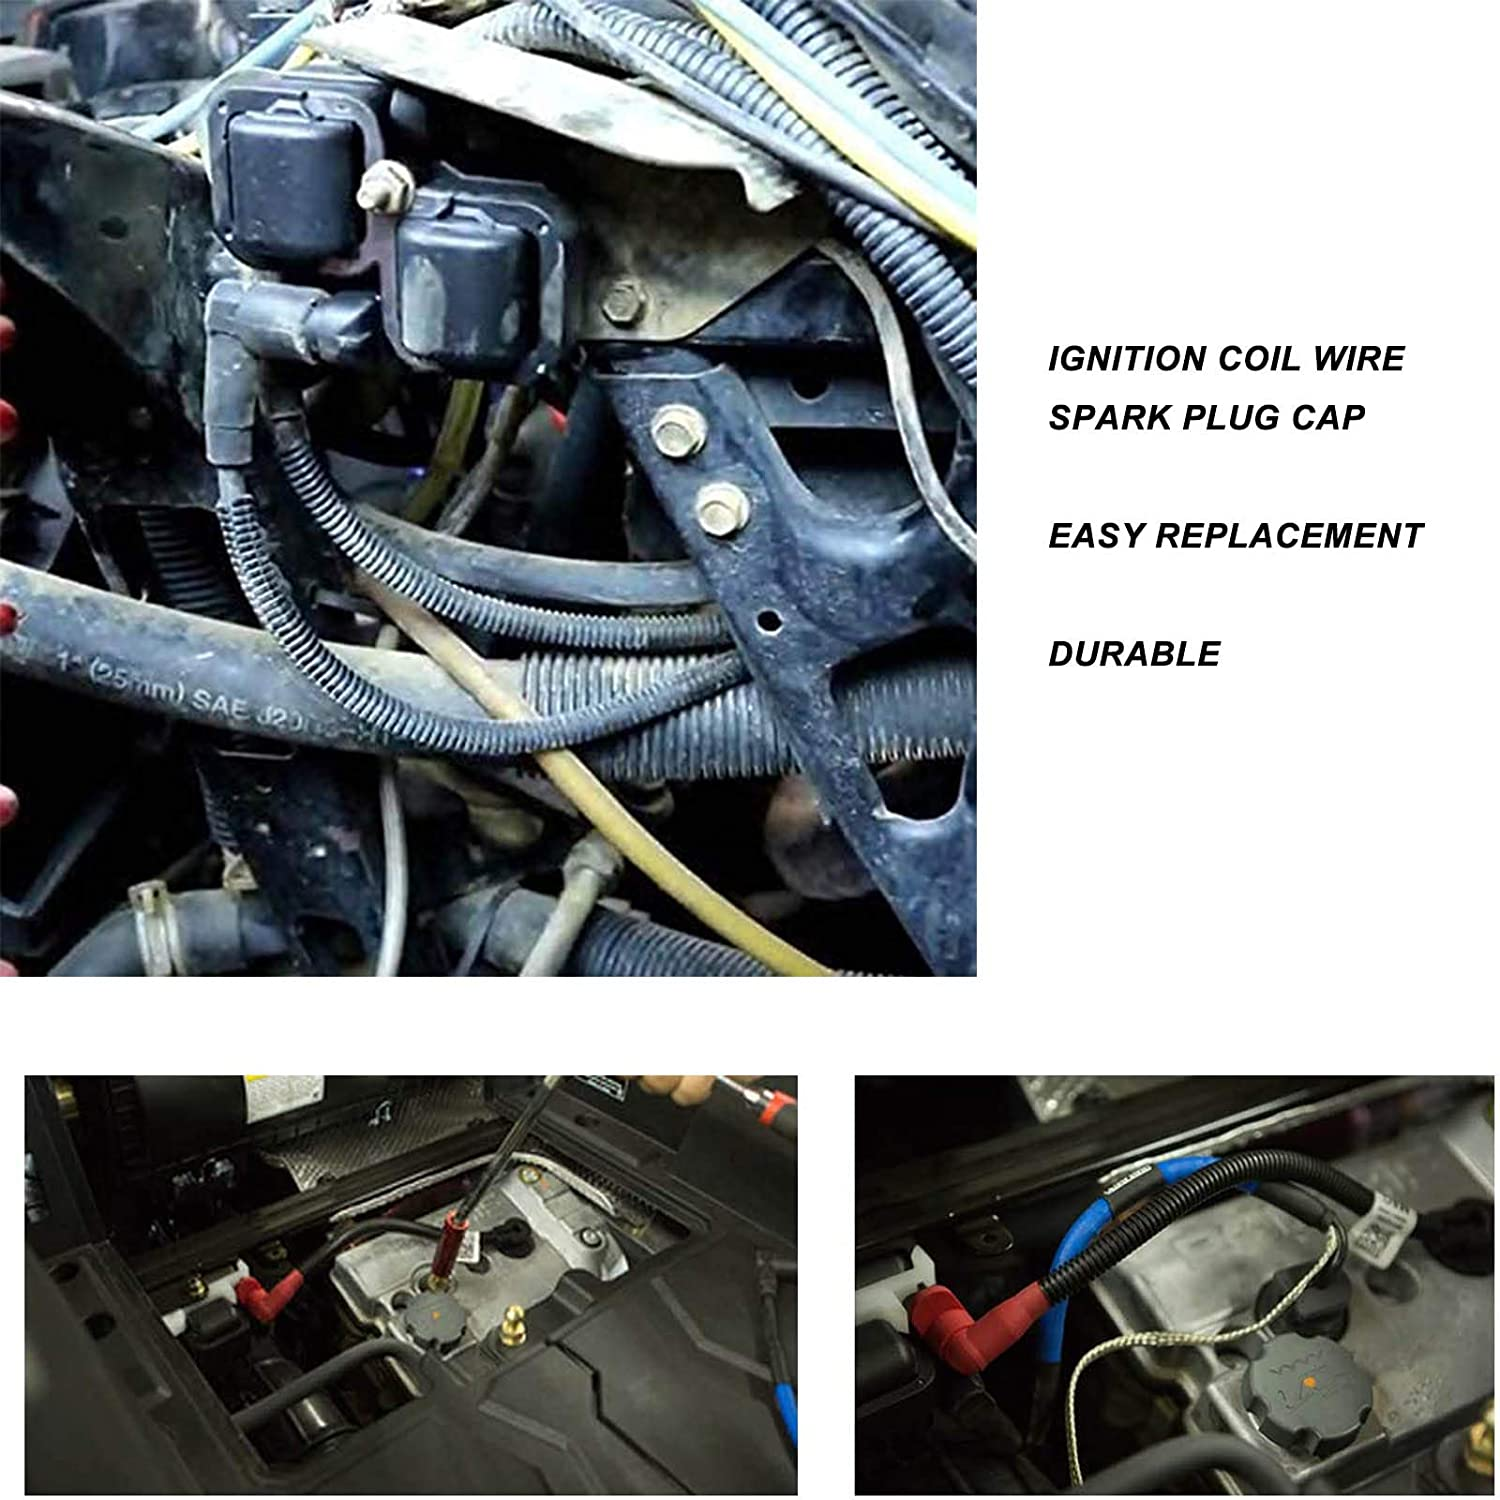 2 pieces New Spark Plug Ignition Coil Wires, For RZR S 800 Ranger Crew XP HD Sportsman 700 800 EFI